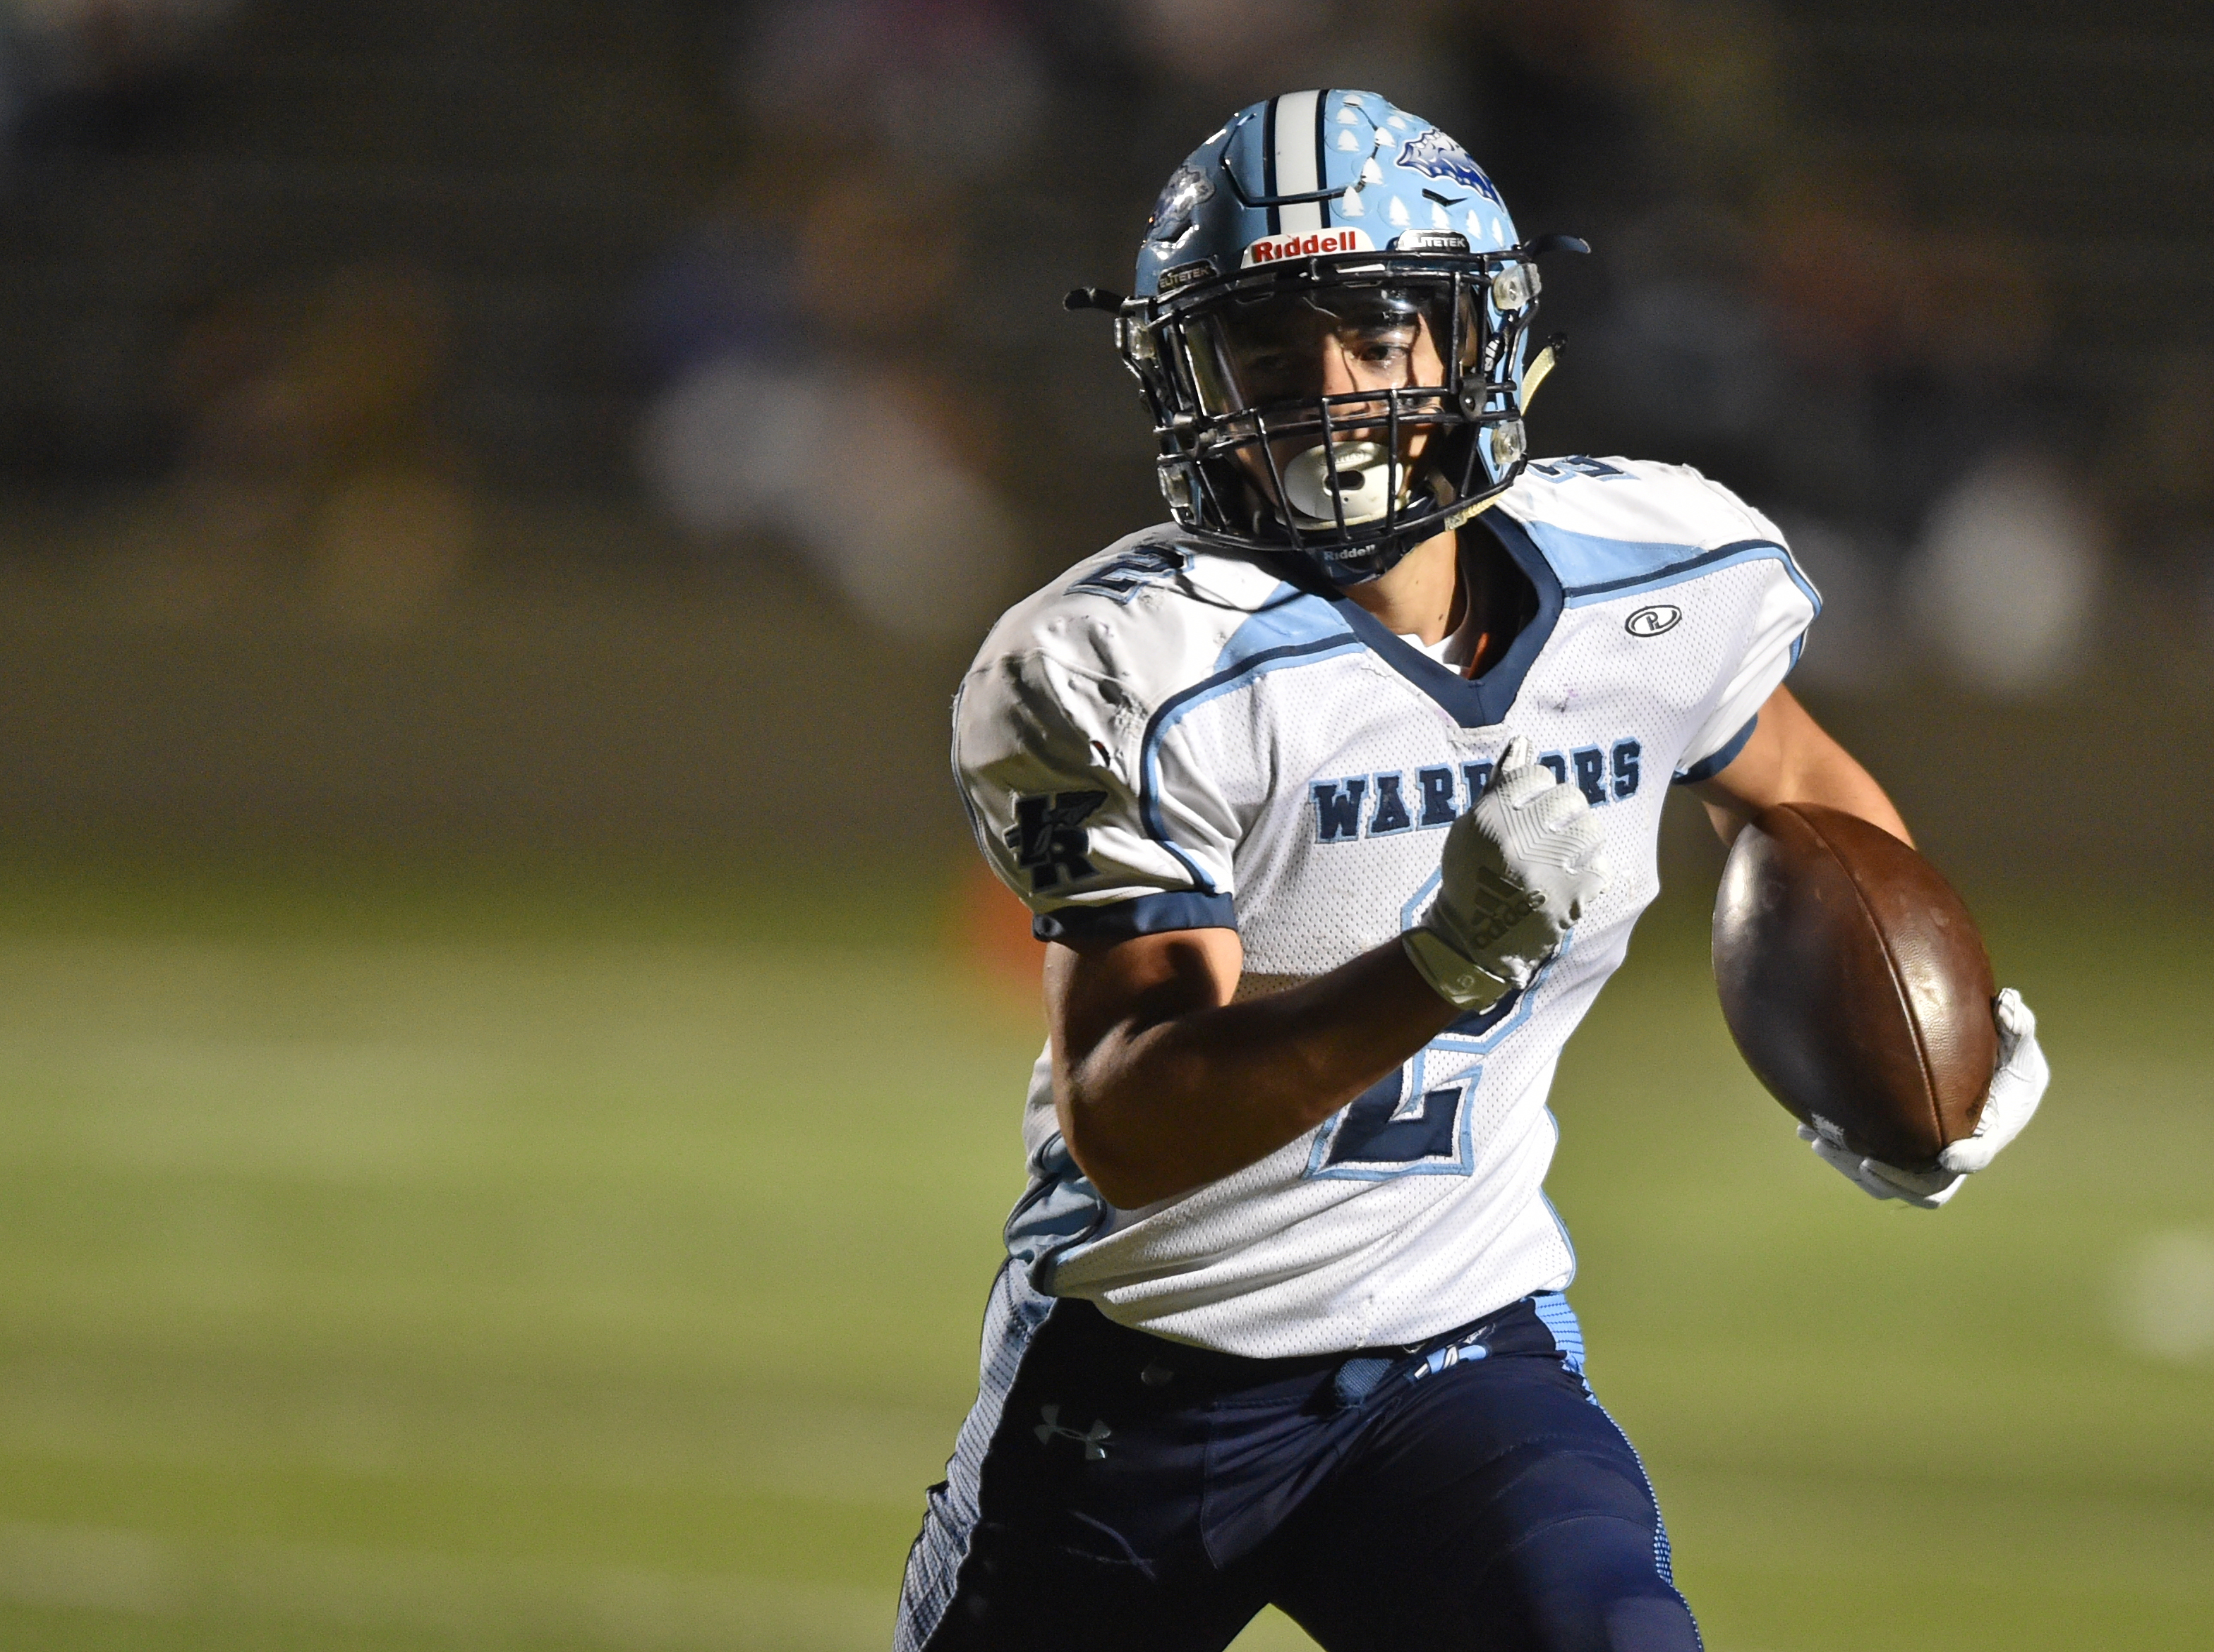 Indian River bounces back with win over Whitesboro